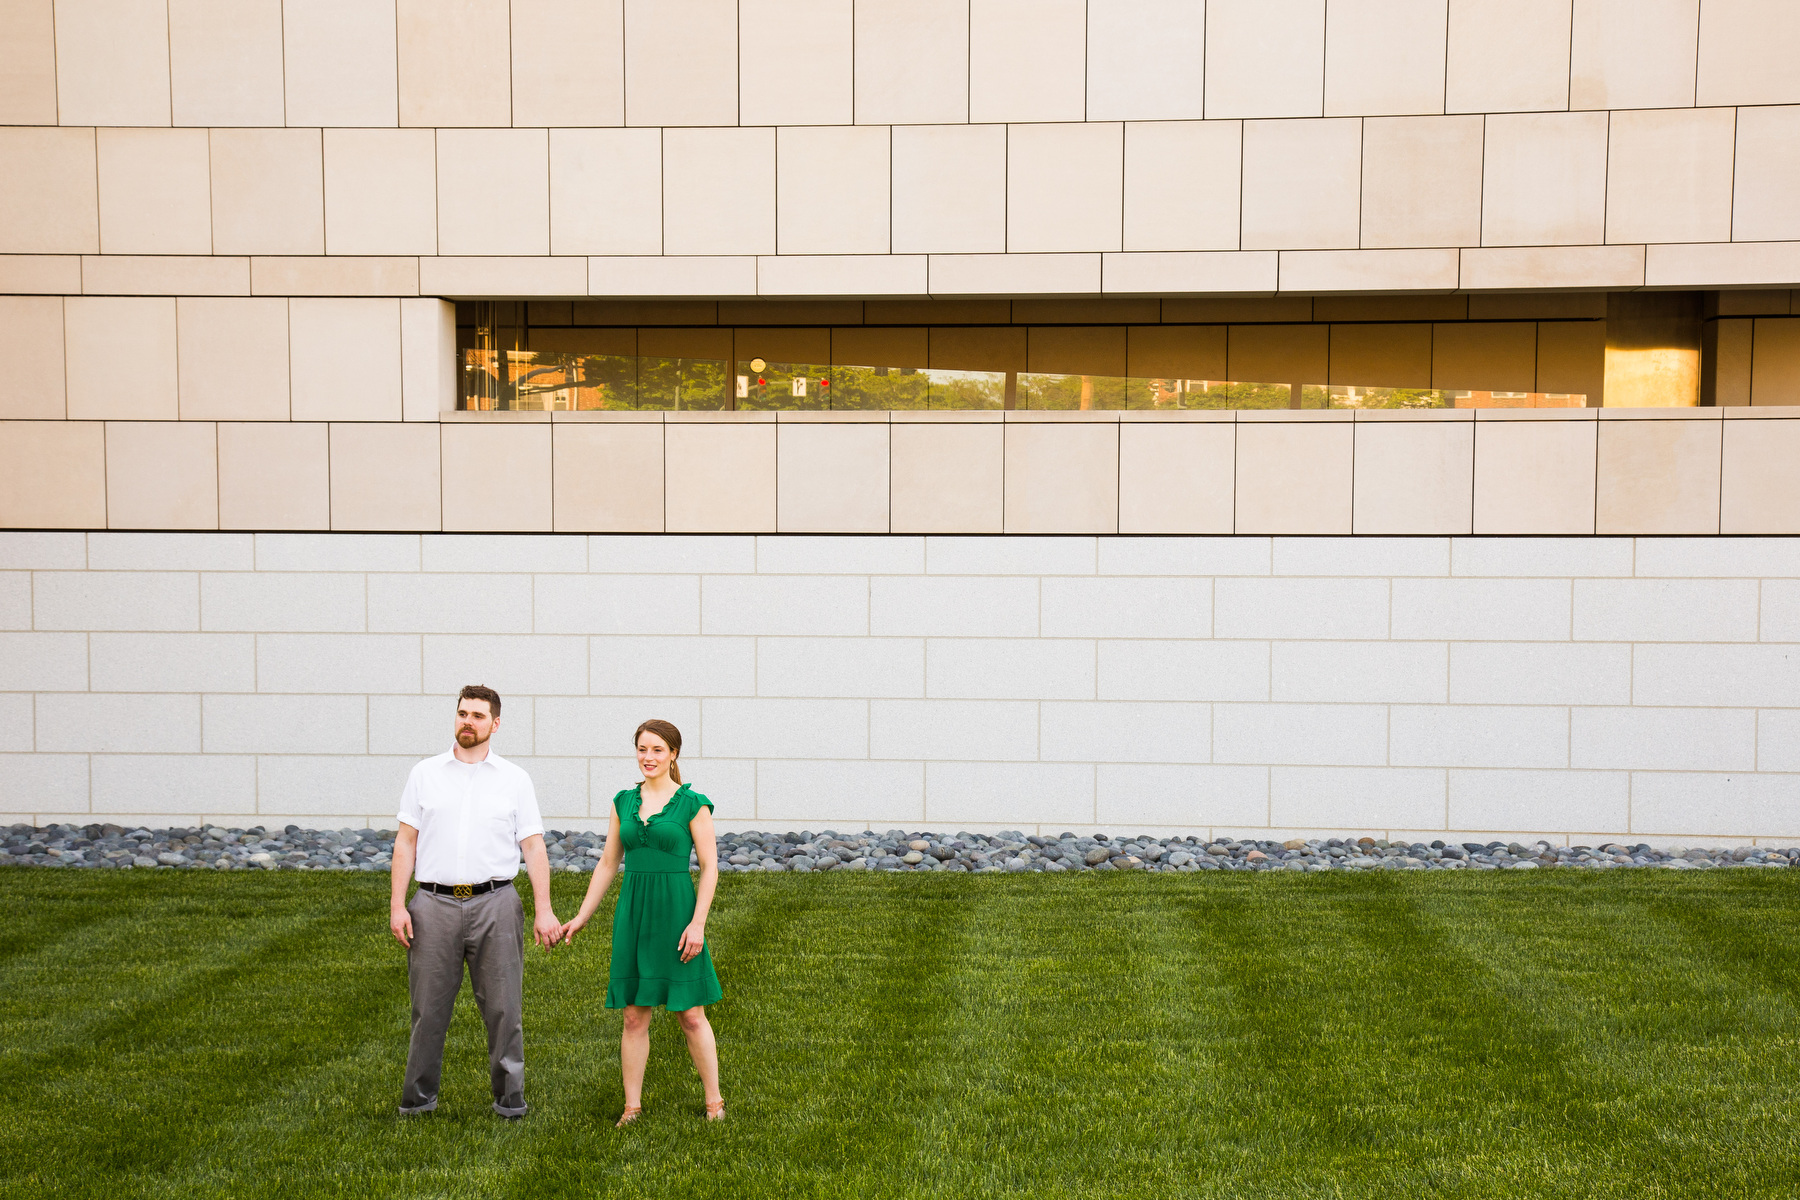 Engagement portraits of a bride and groom to be at The VMFA in Richmond, VA